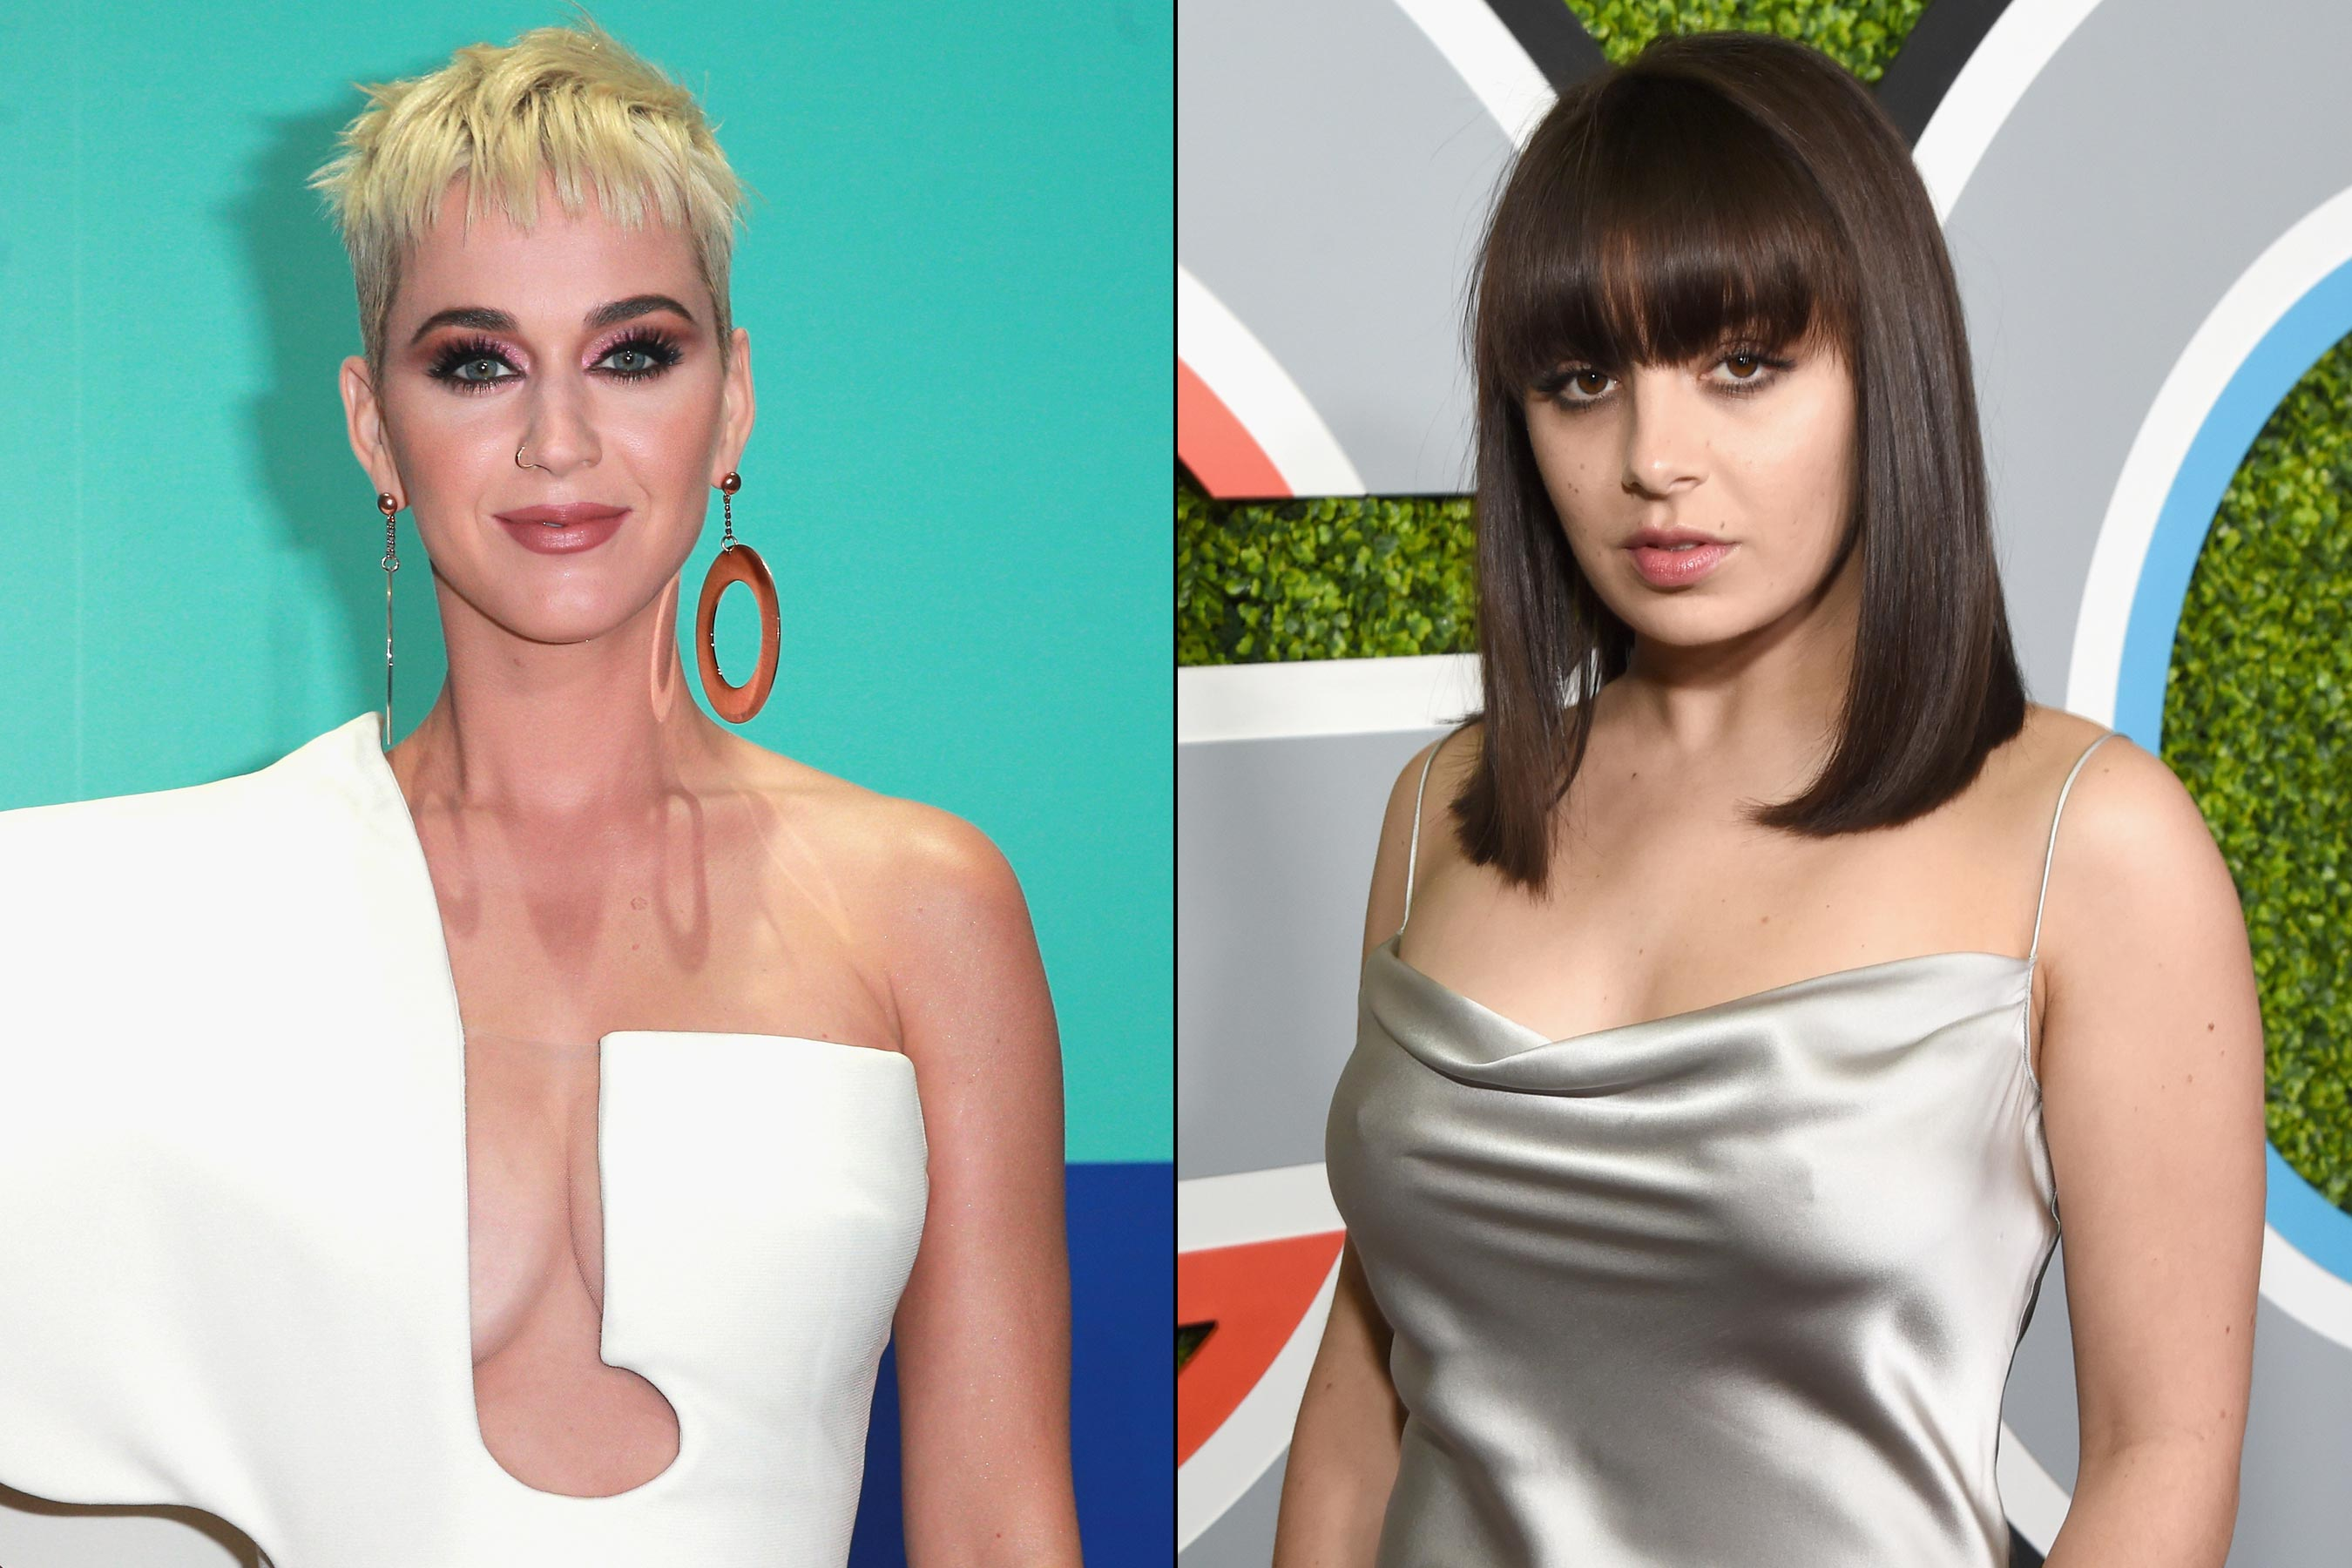 Katy Perry, Charli XCX slam Grammys president for saying women need to 'step up'